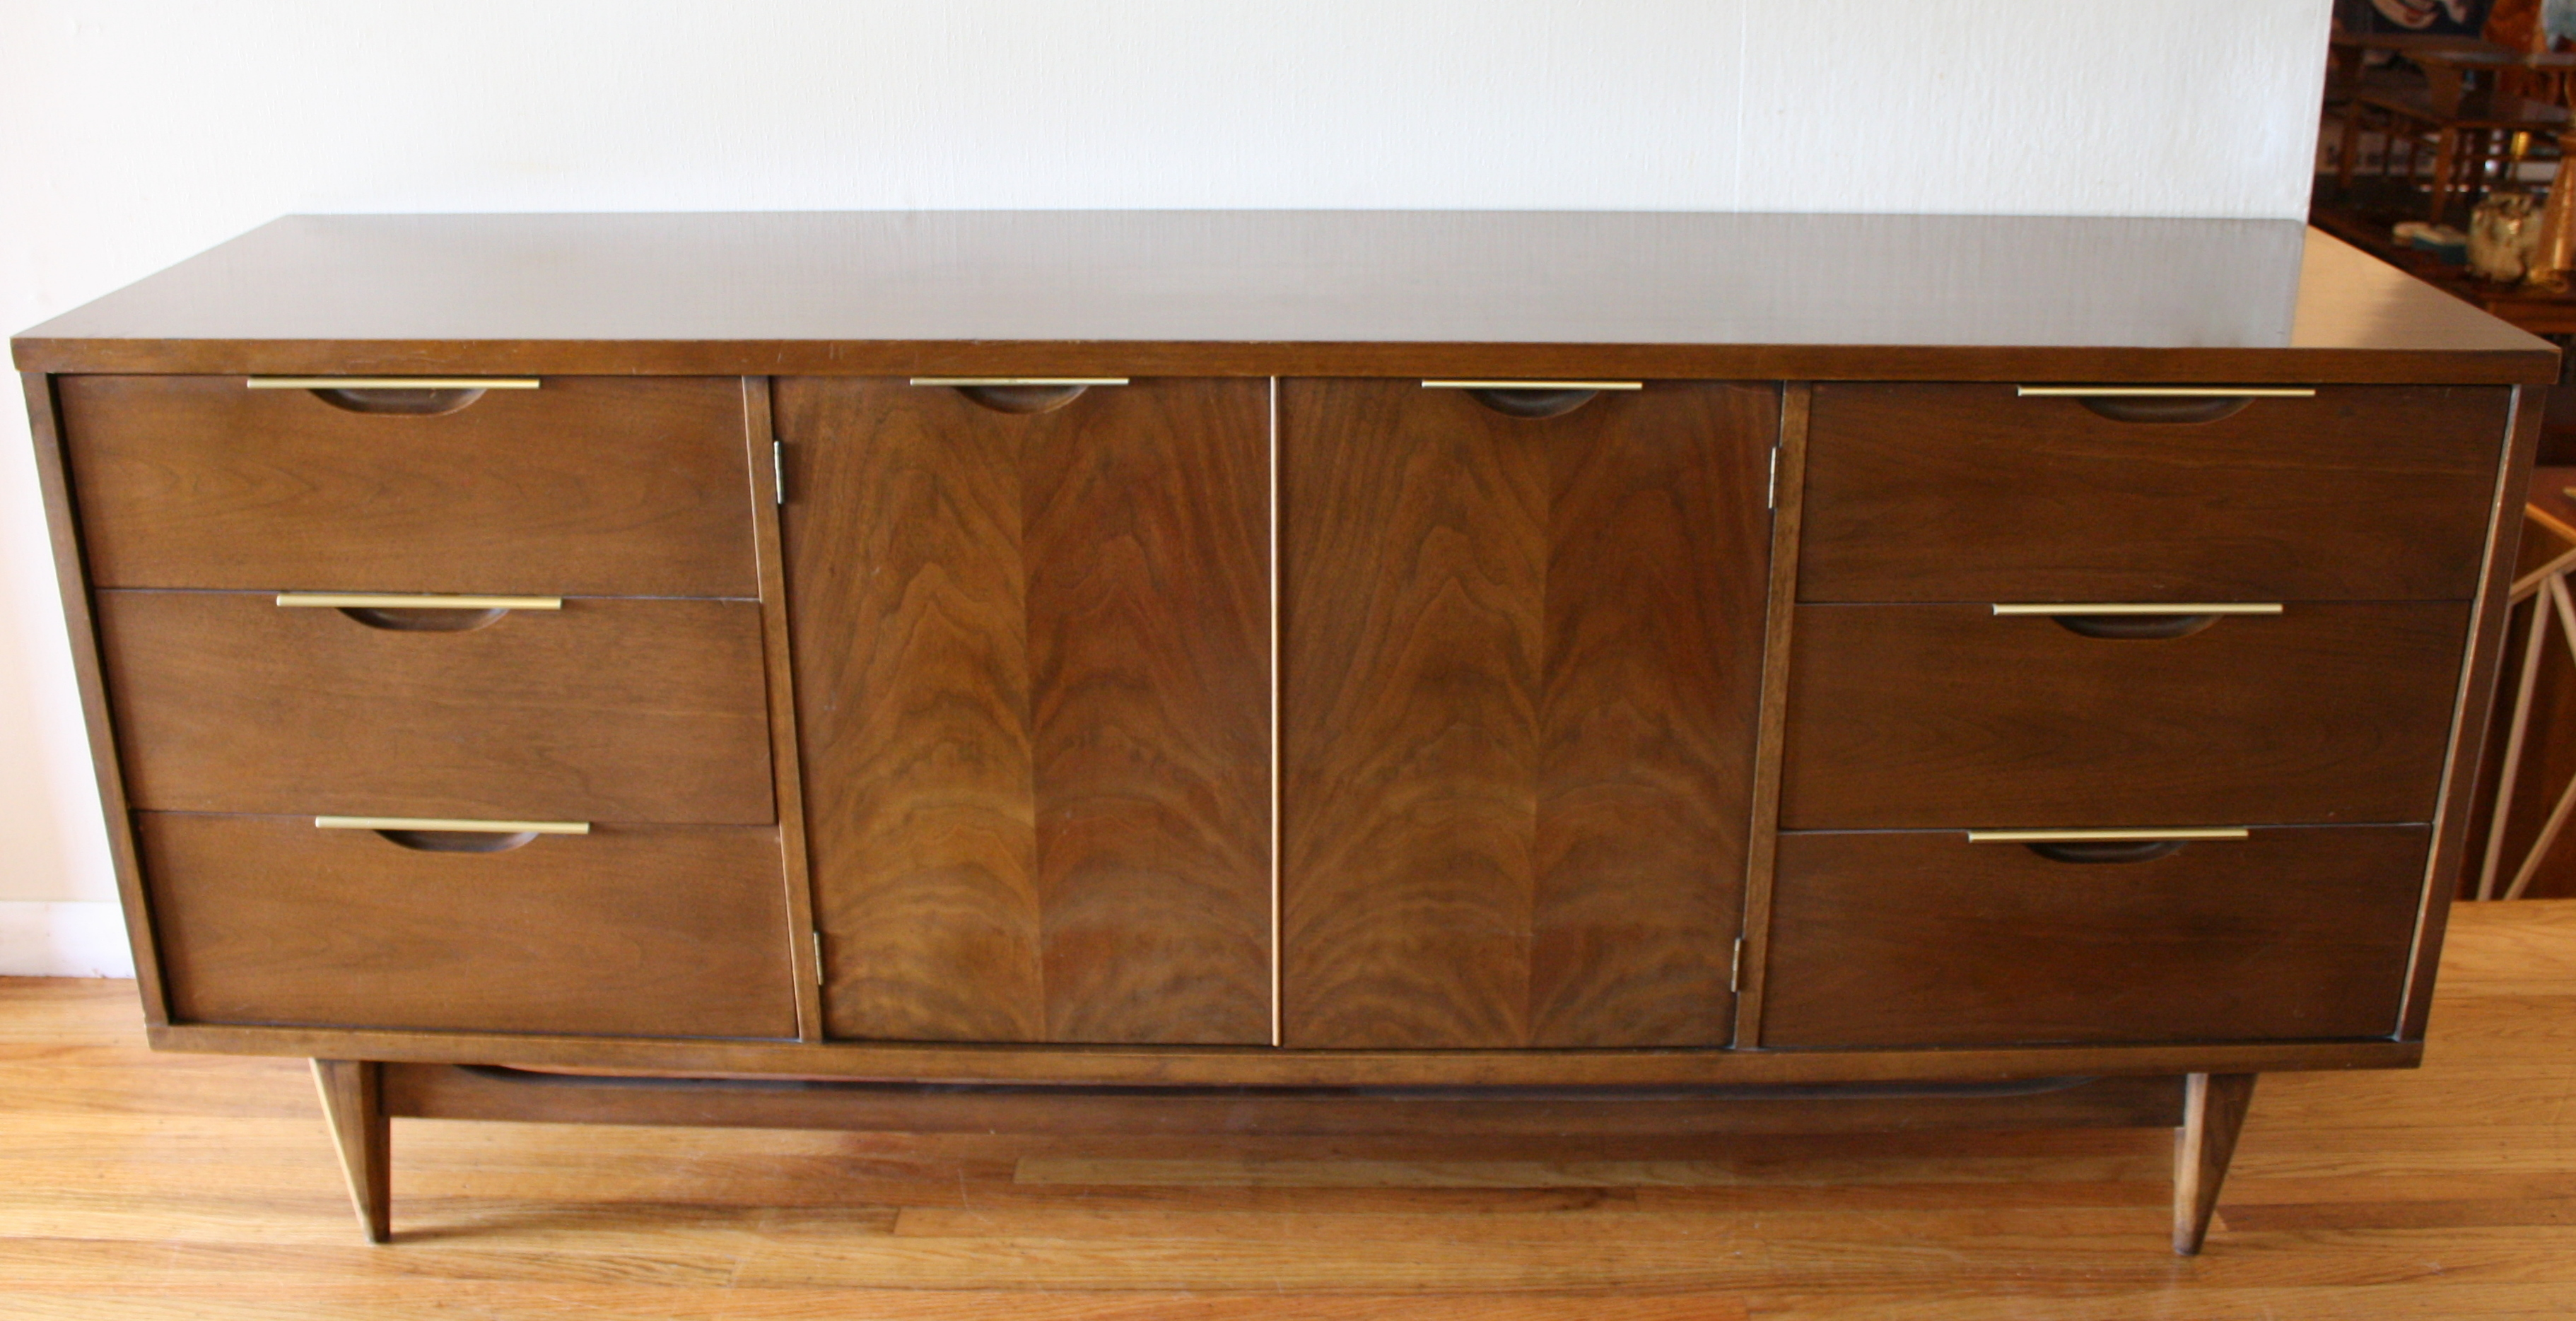 Mid Century Modern Credenza Low Dressers Picked Vintage : kent coffey tableau credenza 1 from pickedvintage.com size 3644 x 1869 jpeg 2343kB